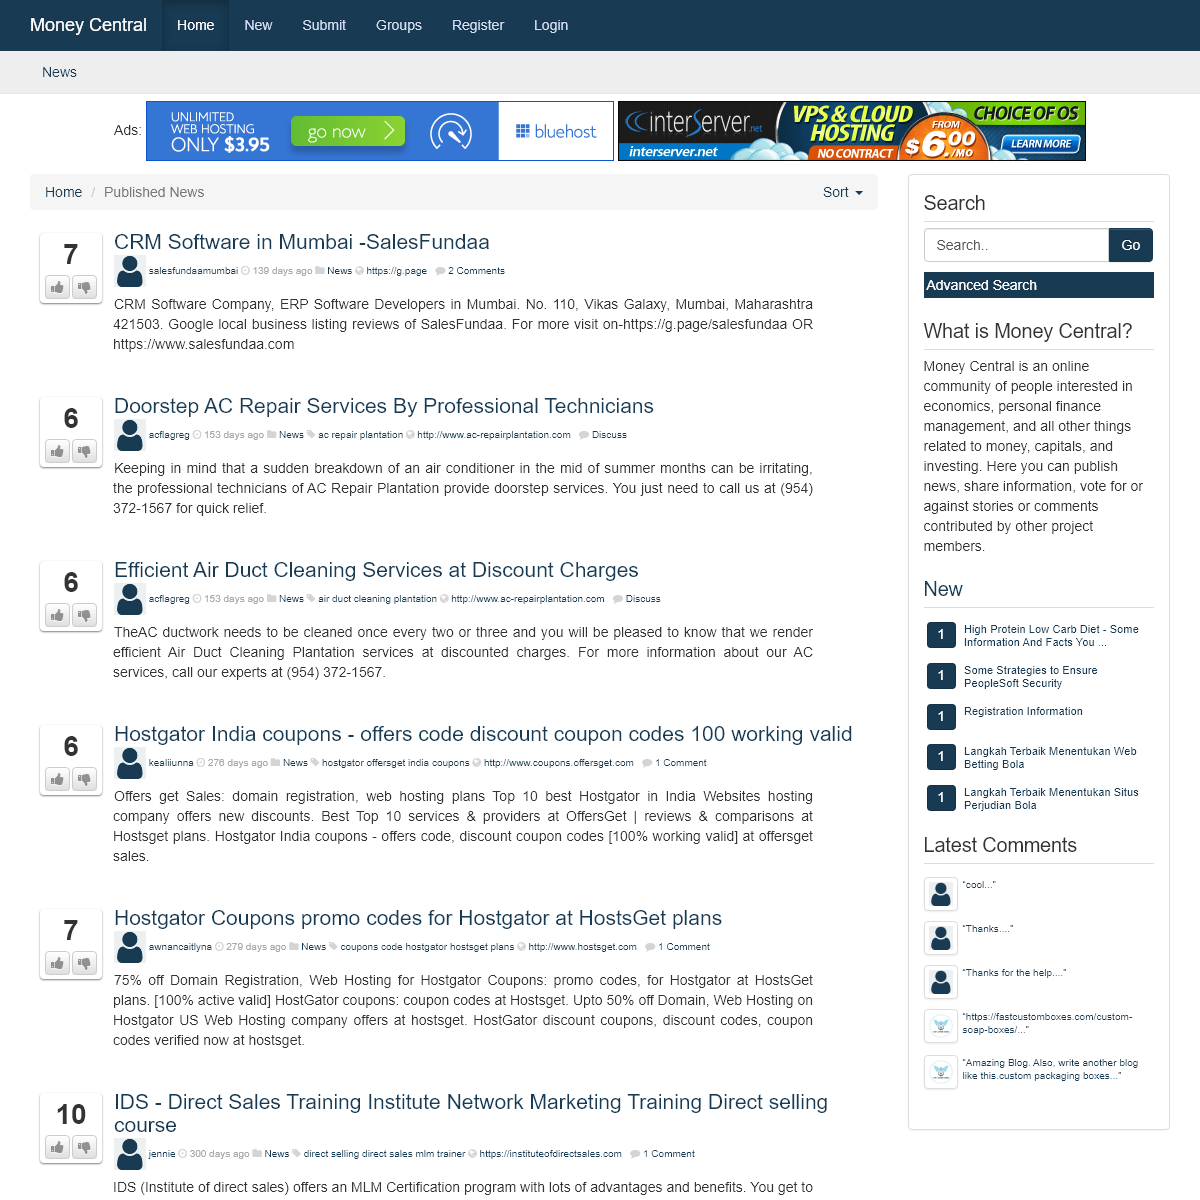 Money Central - Your Source for Financial News and Money Management Ideas